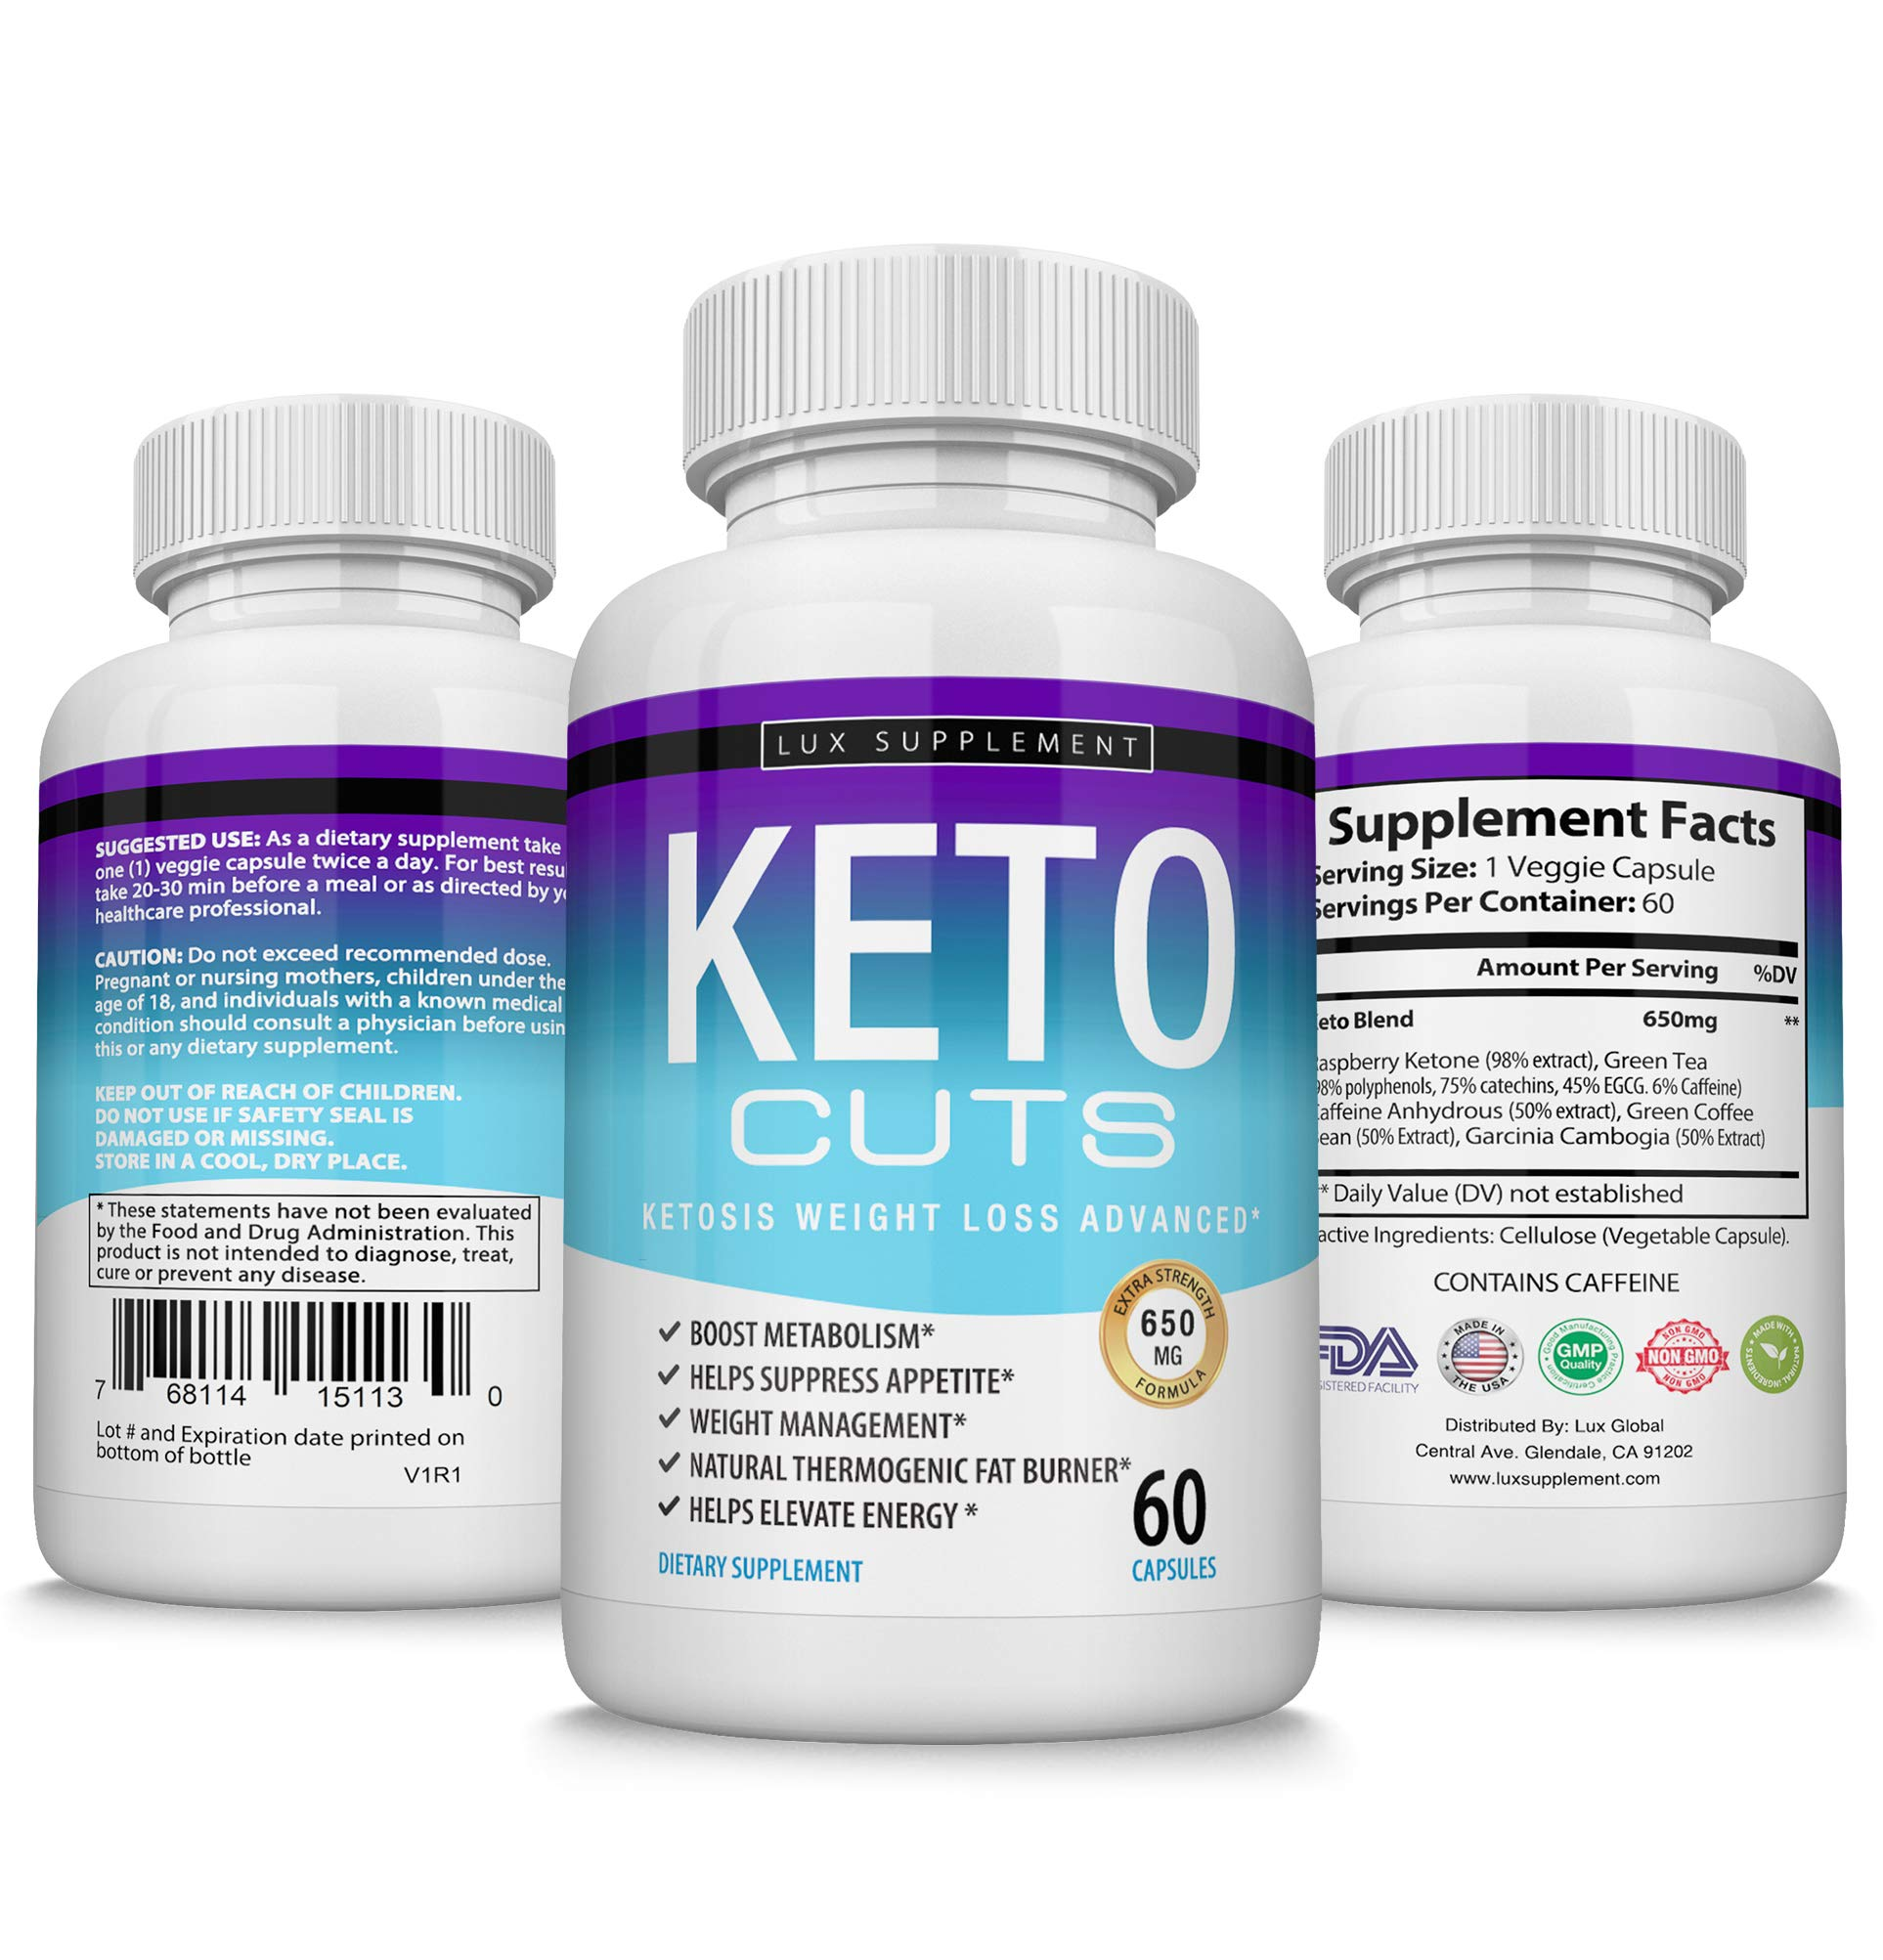 Keto Cuts Pills Ketosis Weight Loss Advanced - Best Ultra Fat Burner Using Ketone and Ketogenic Diet, Boost Metabolism and Energy While Burning Fat, Men Women, 60 Capsules Lux Supplement by Lux Supplement (Image #5)